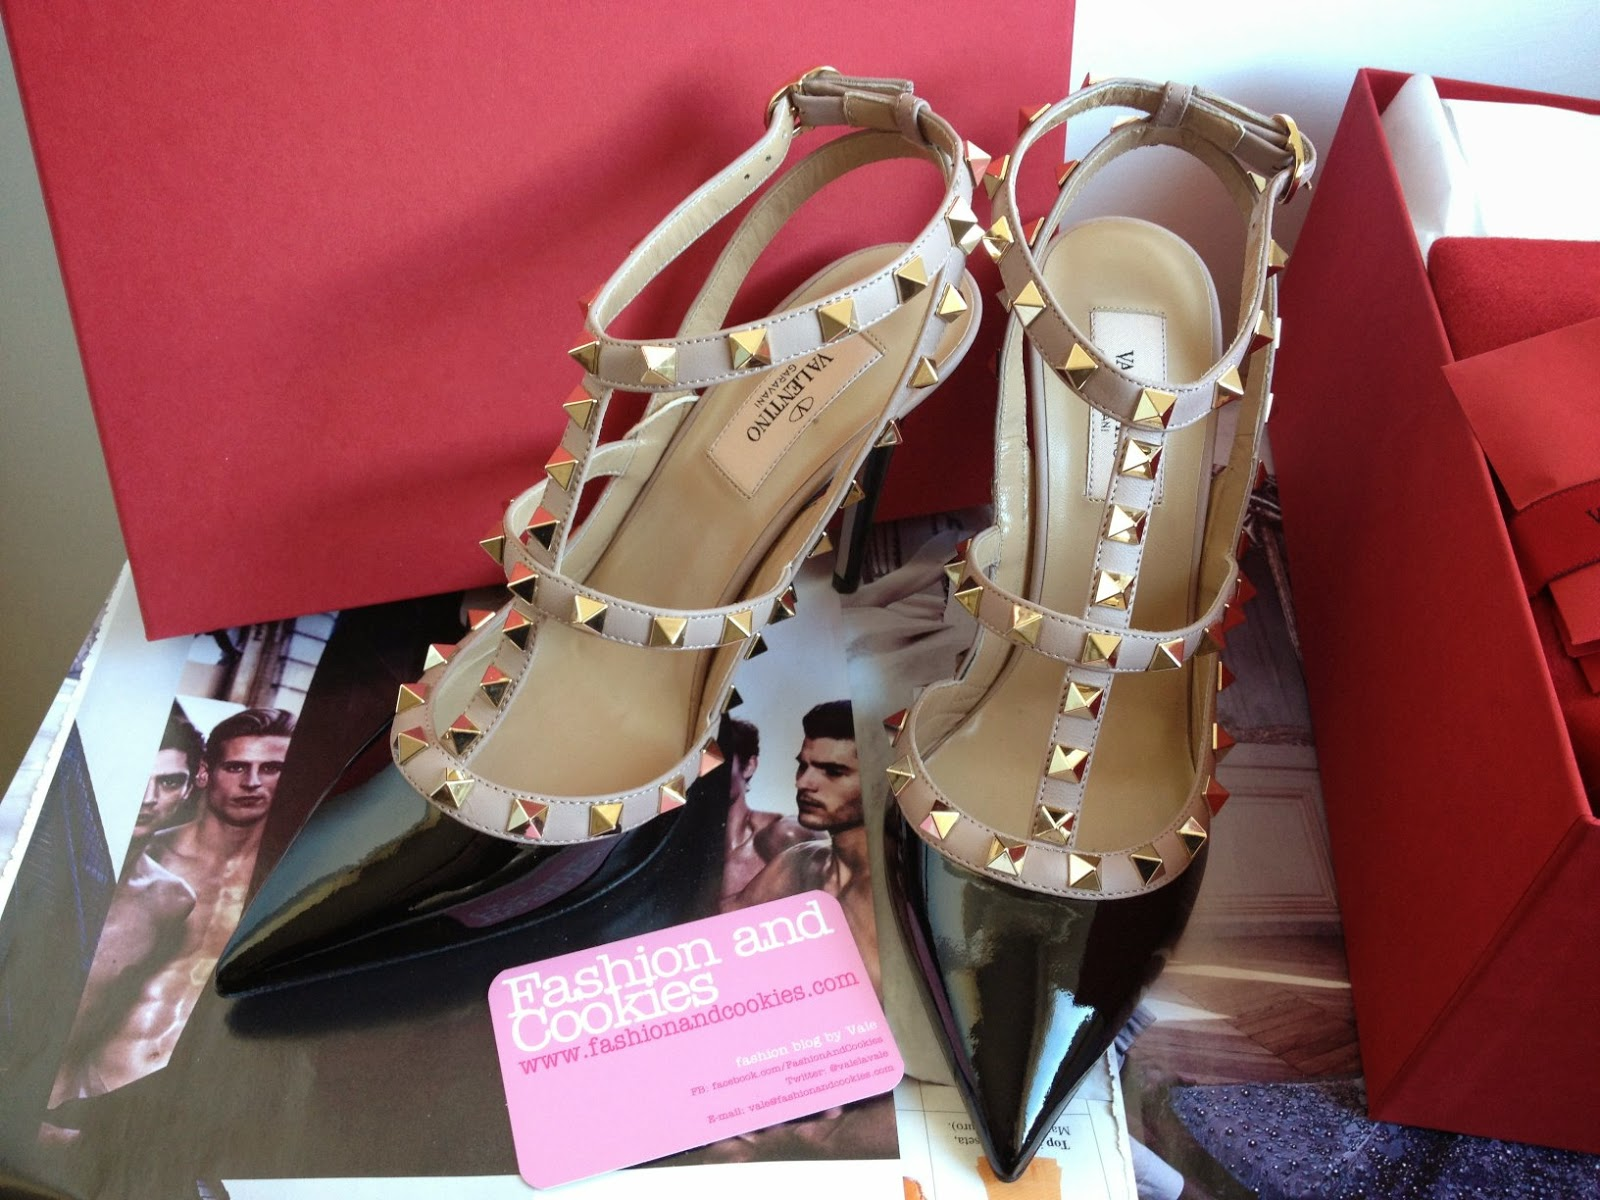 Valentino Rockstud heels review, Rockstud scarpe, dove comprare Rockstud Valentino, Valentino rockstud fit and size, Valentino Rockstud review, Valentino Rockstud patent leather, Fashion and Cookies fashion blog, fashion blogger